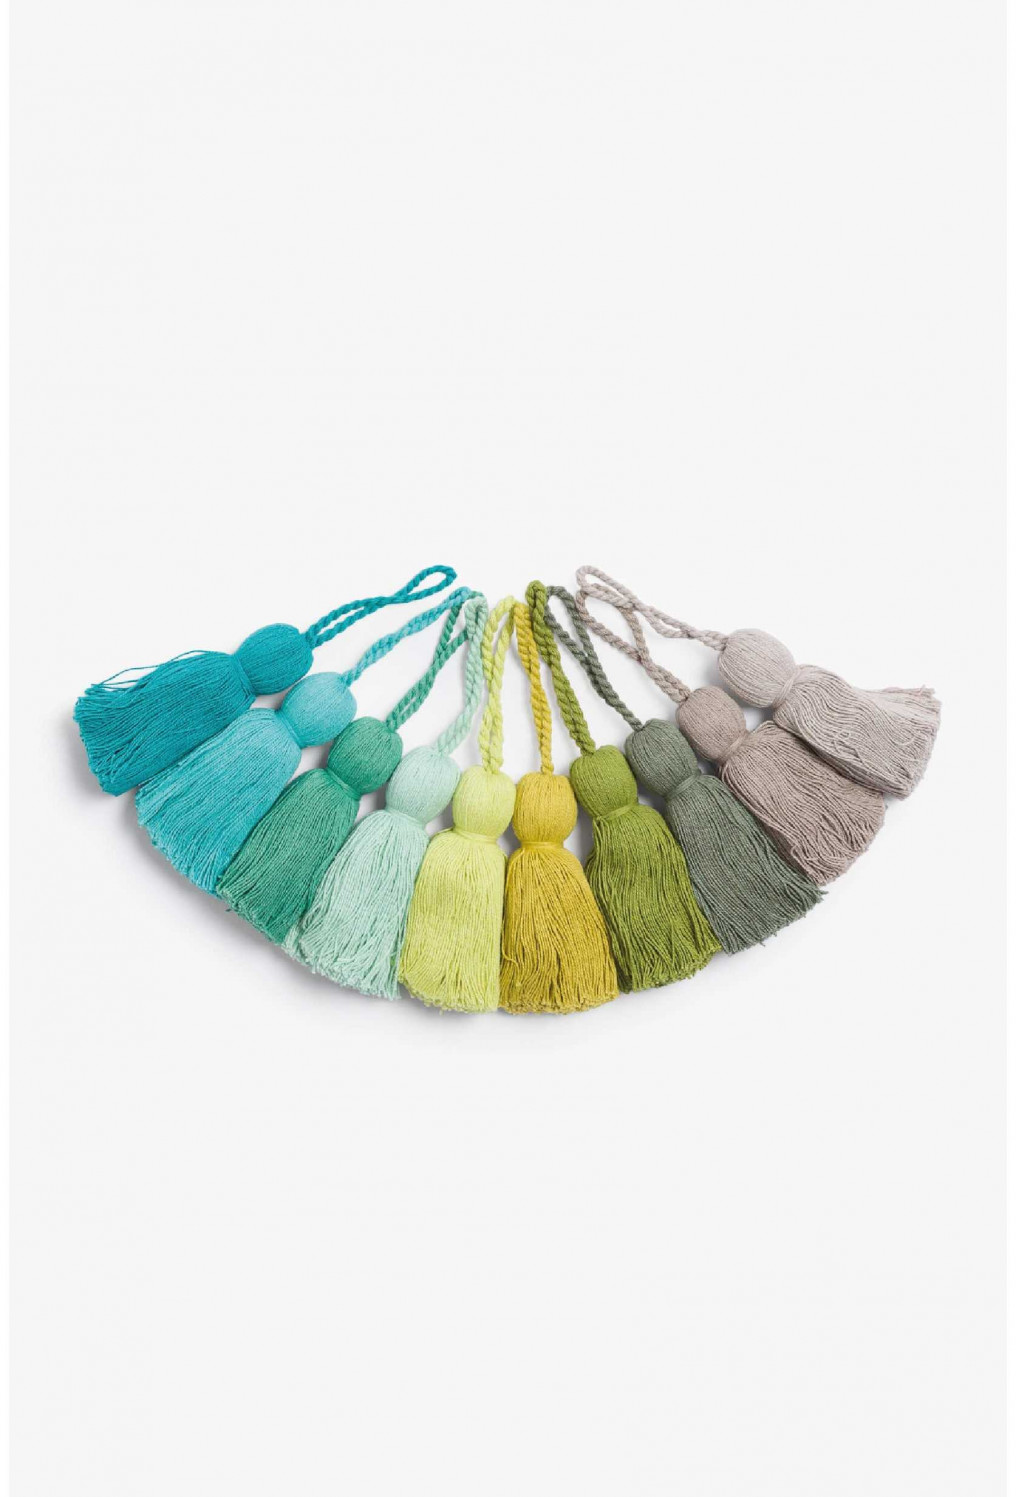 Pack Tassels HORN green (40 u.)